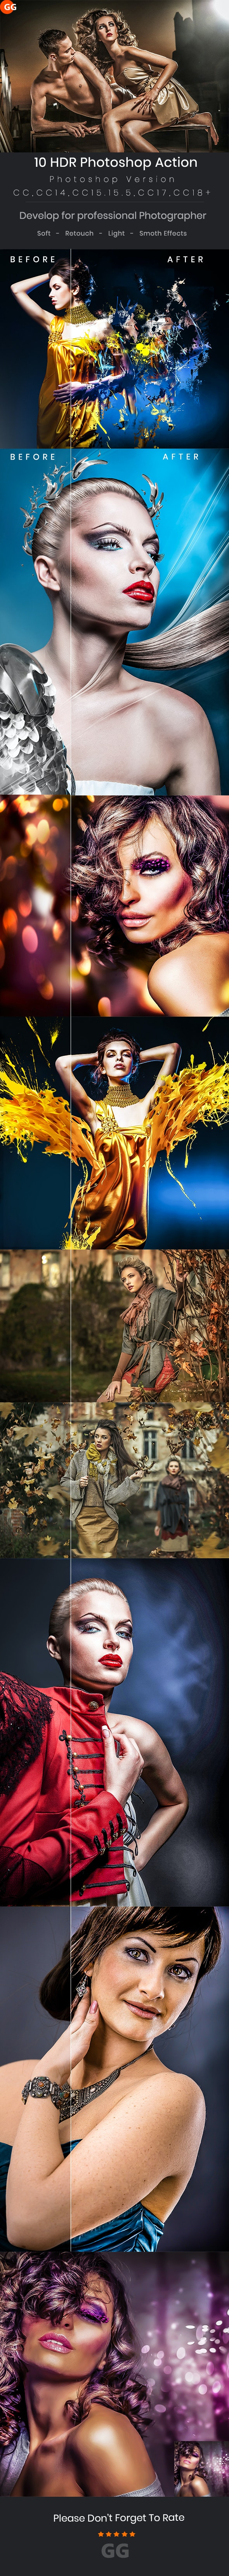 10 HDR Photoshop Action - Photo Effects Actions